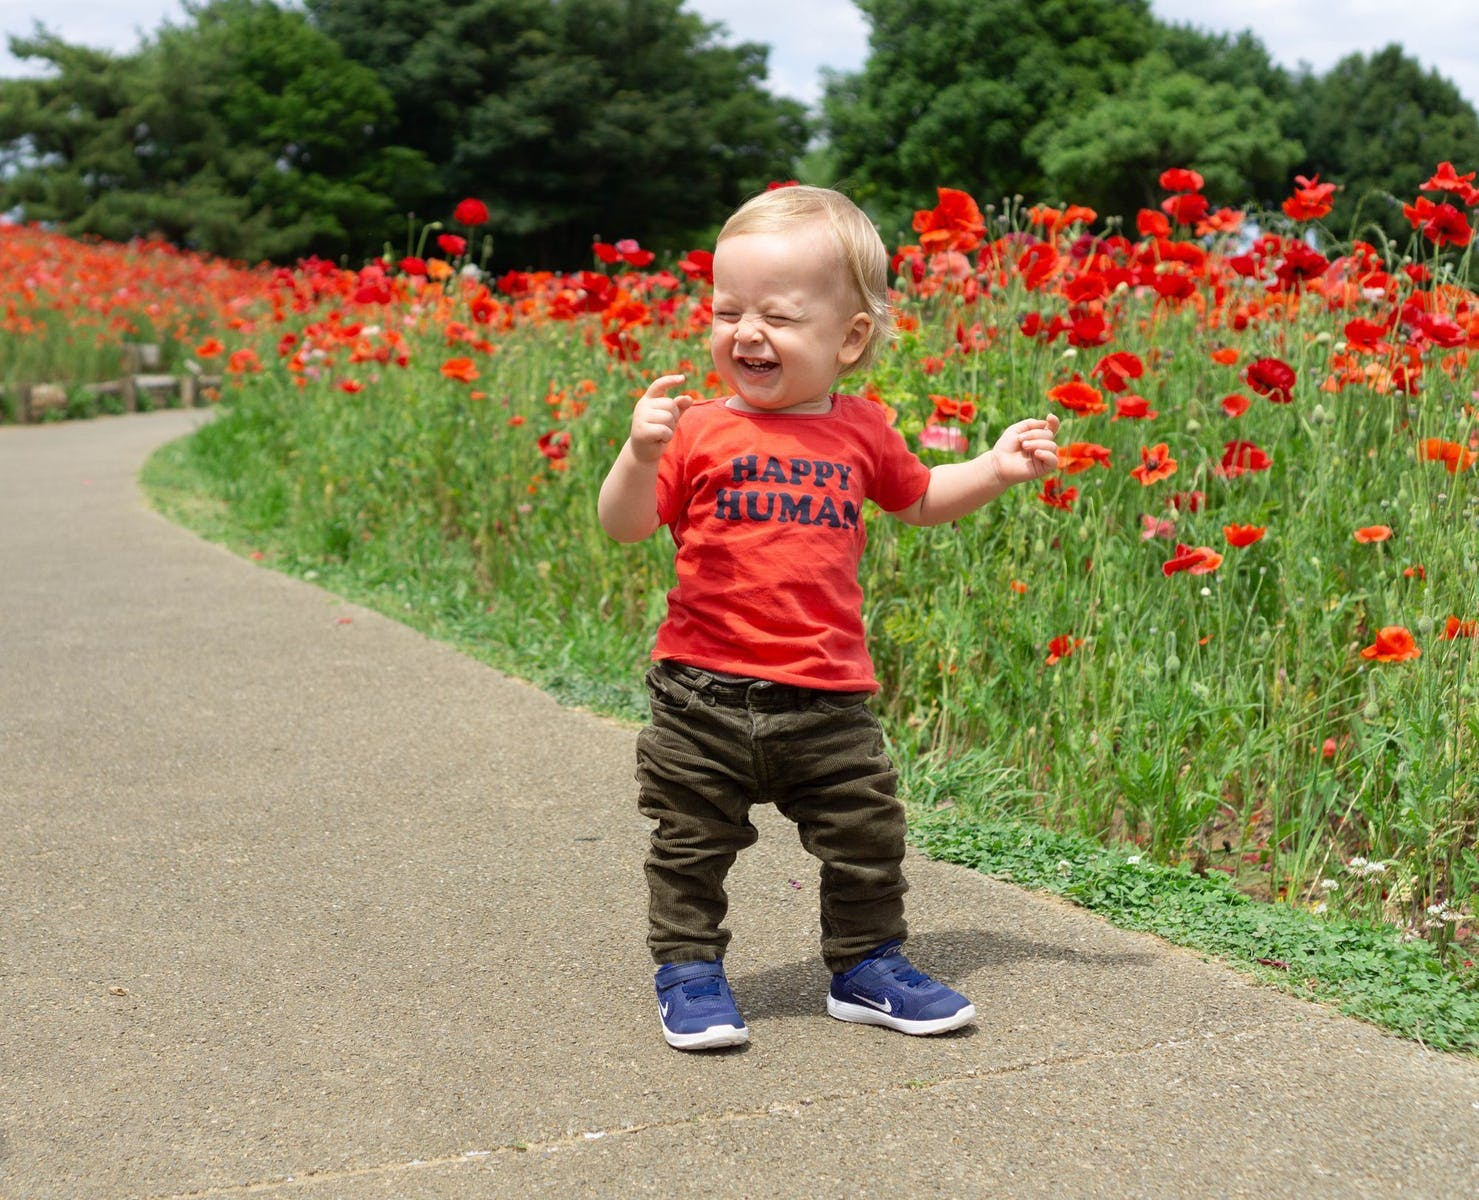 Sun's Out, Kids Out: How to Stay Safe in the Garden